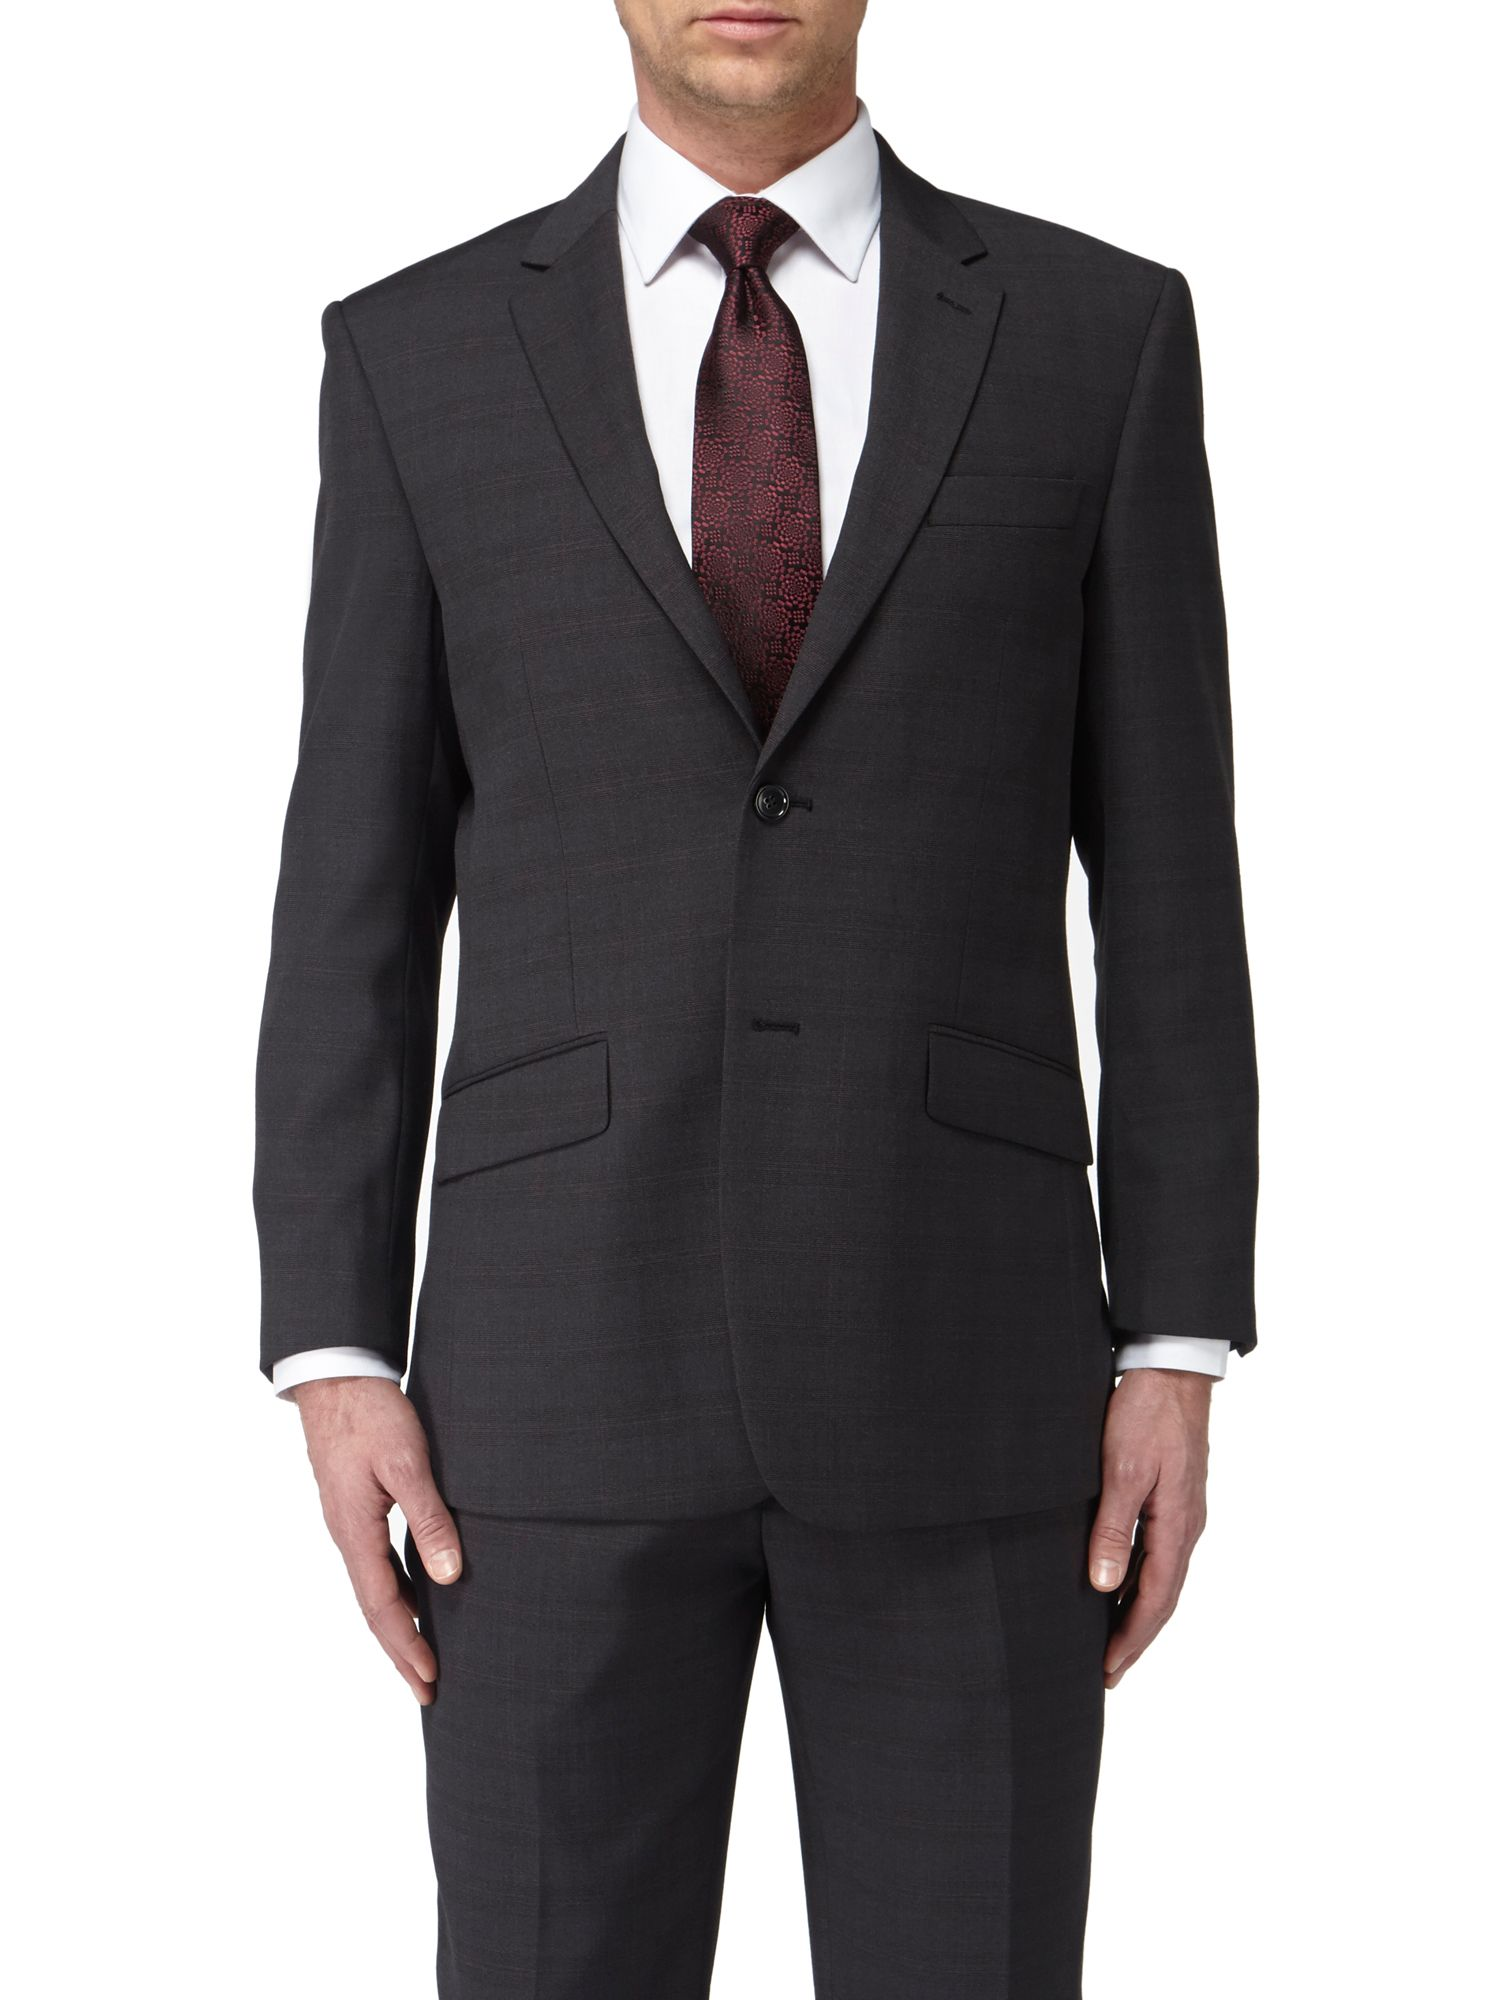 Hayle classic fit single breasted suit jacket